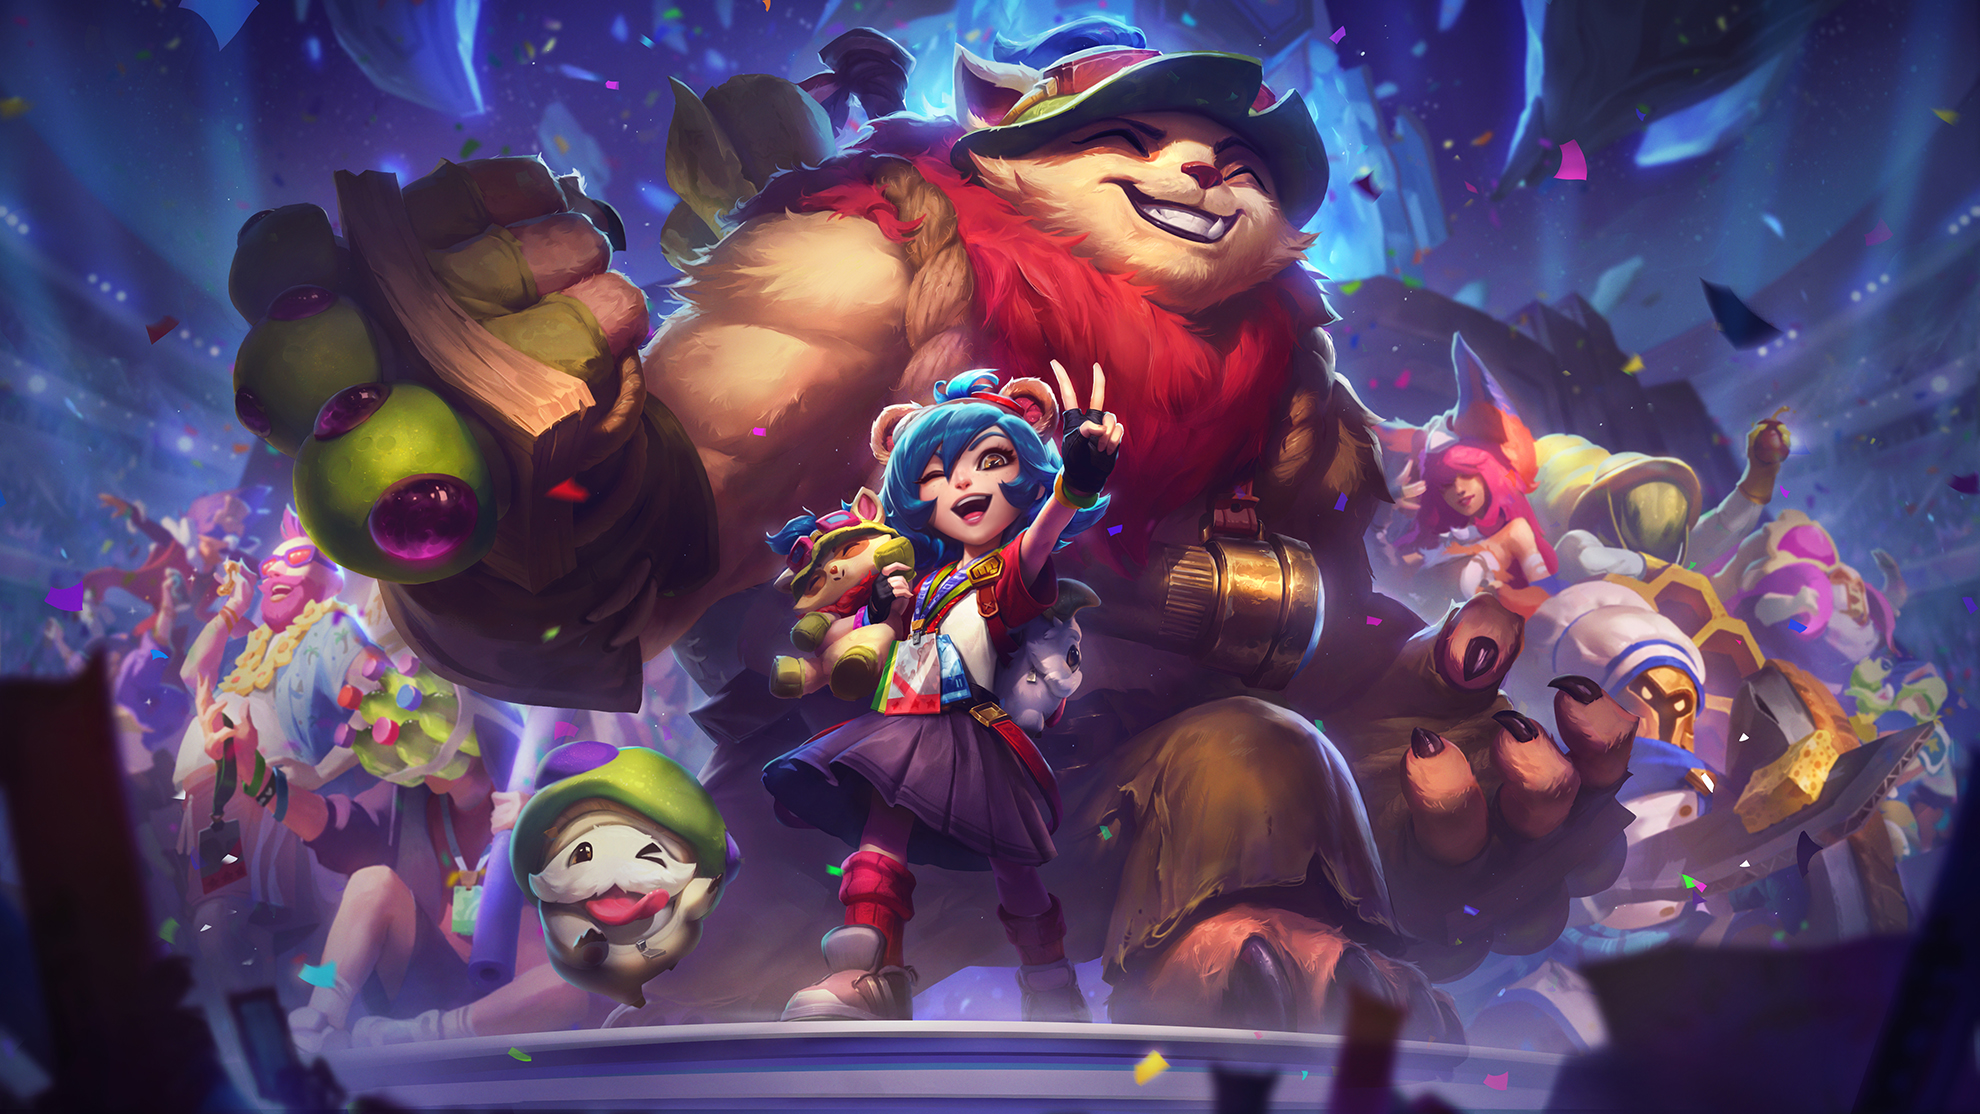 Annie poses while dressed up like Teemo in front of her Tibbers, which is a huge, ripped version of Teemo.